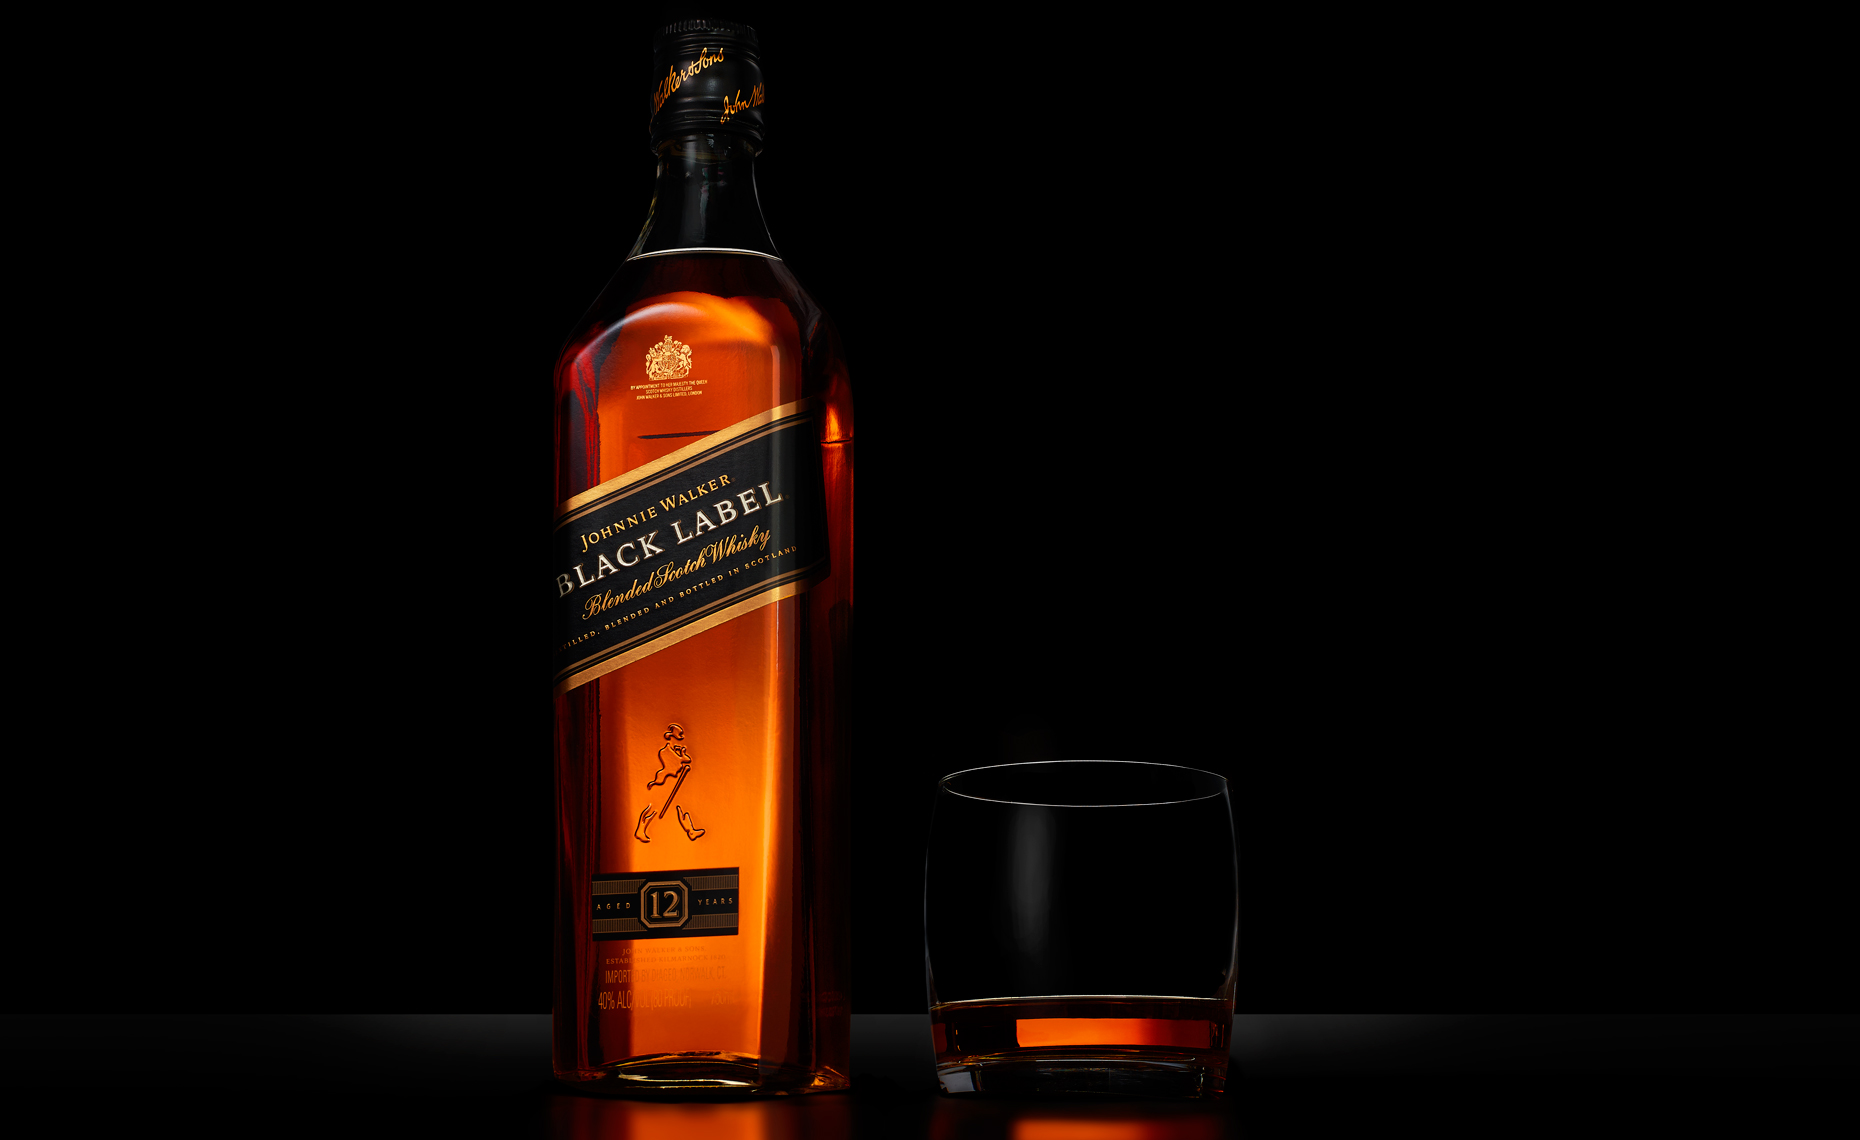 beverage photo of Johnnie Walker Black Label blended scotch whiskey by brian kaldorf